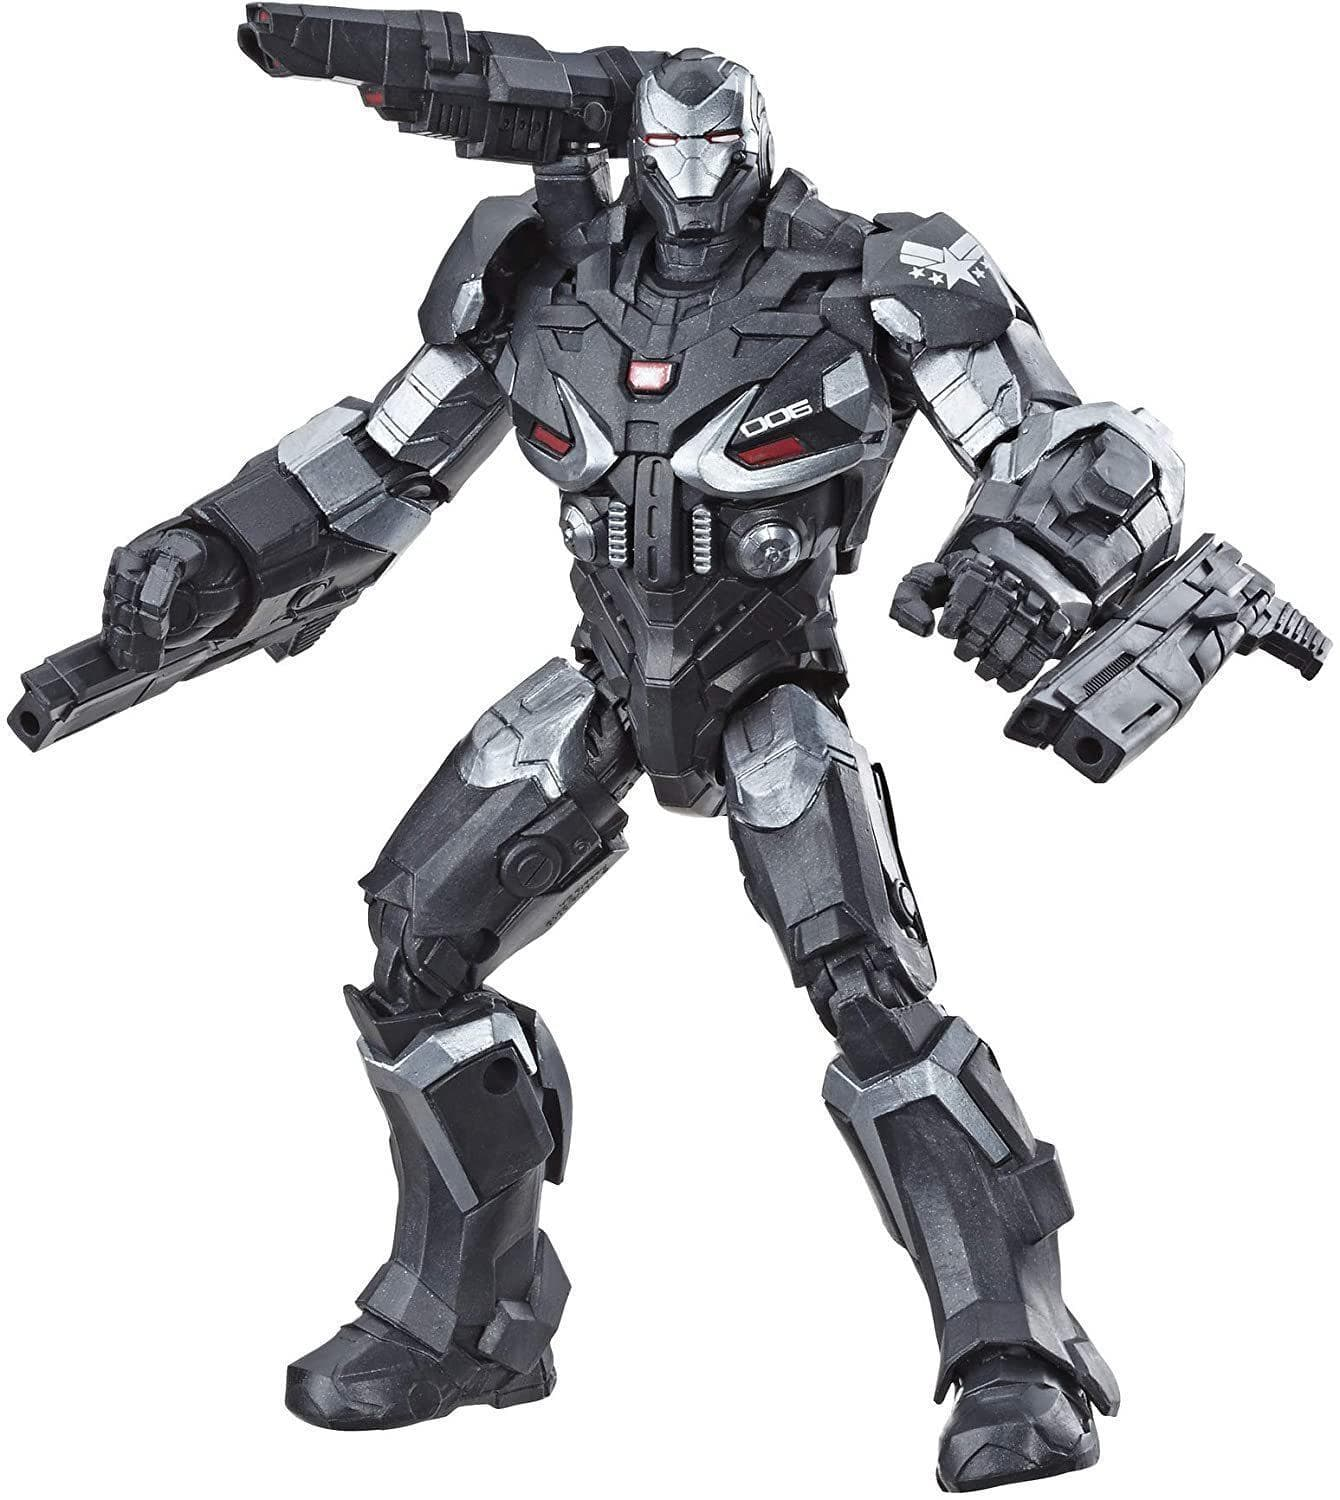 "Avengers Endgame War Machine 6"" Action Figure - Cult of Geek"